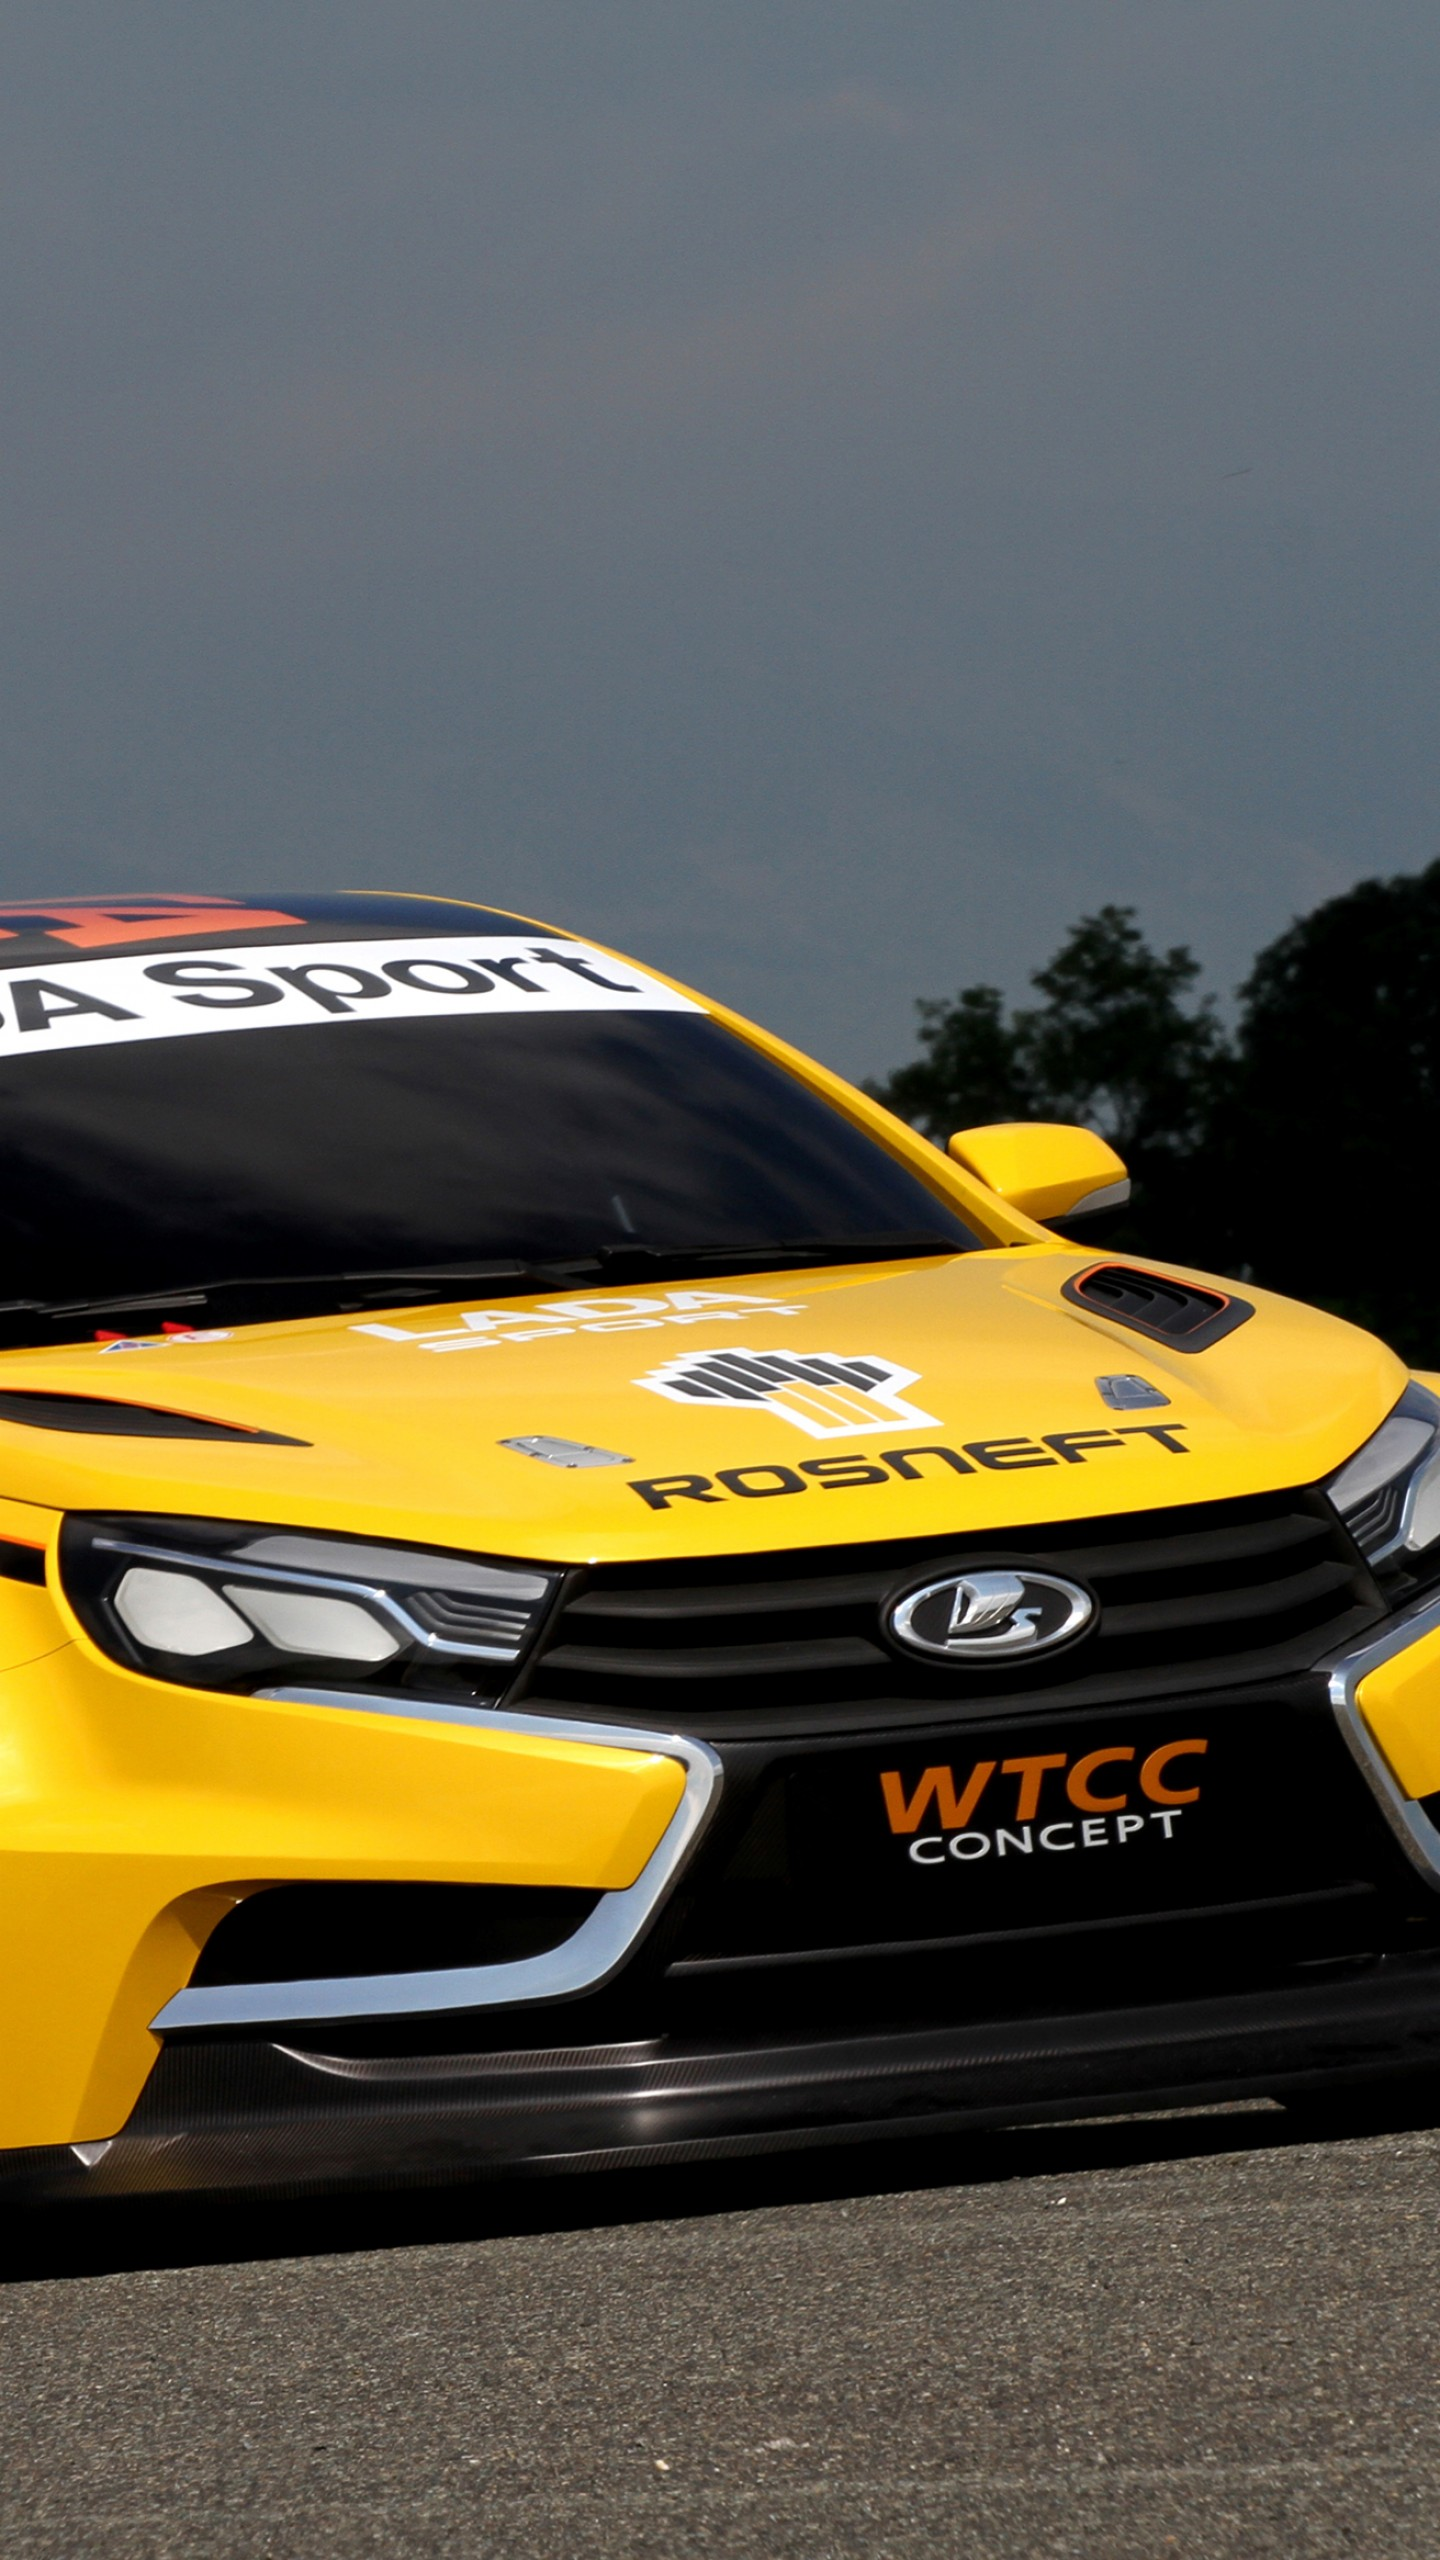 Nissan Sports Car >> Wallpaper Lada Vesta WTCC, sports car, Lada Vesta, review, test drive, 2015 cars, front, Cars ...